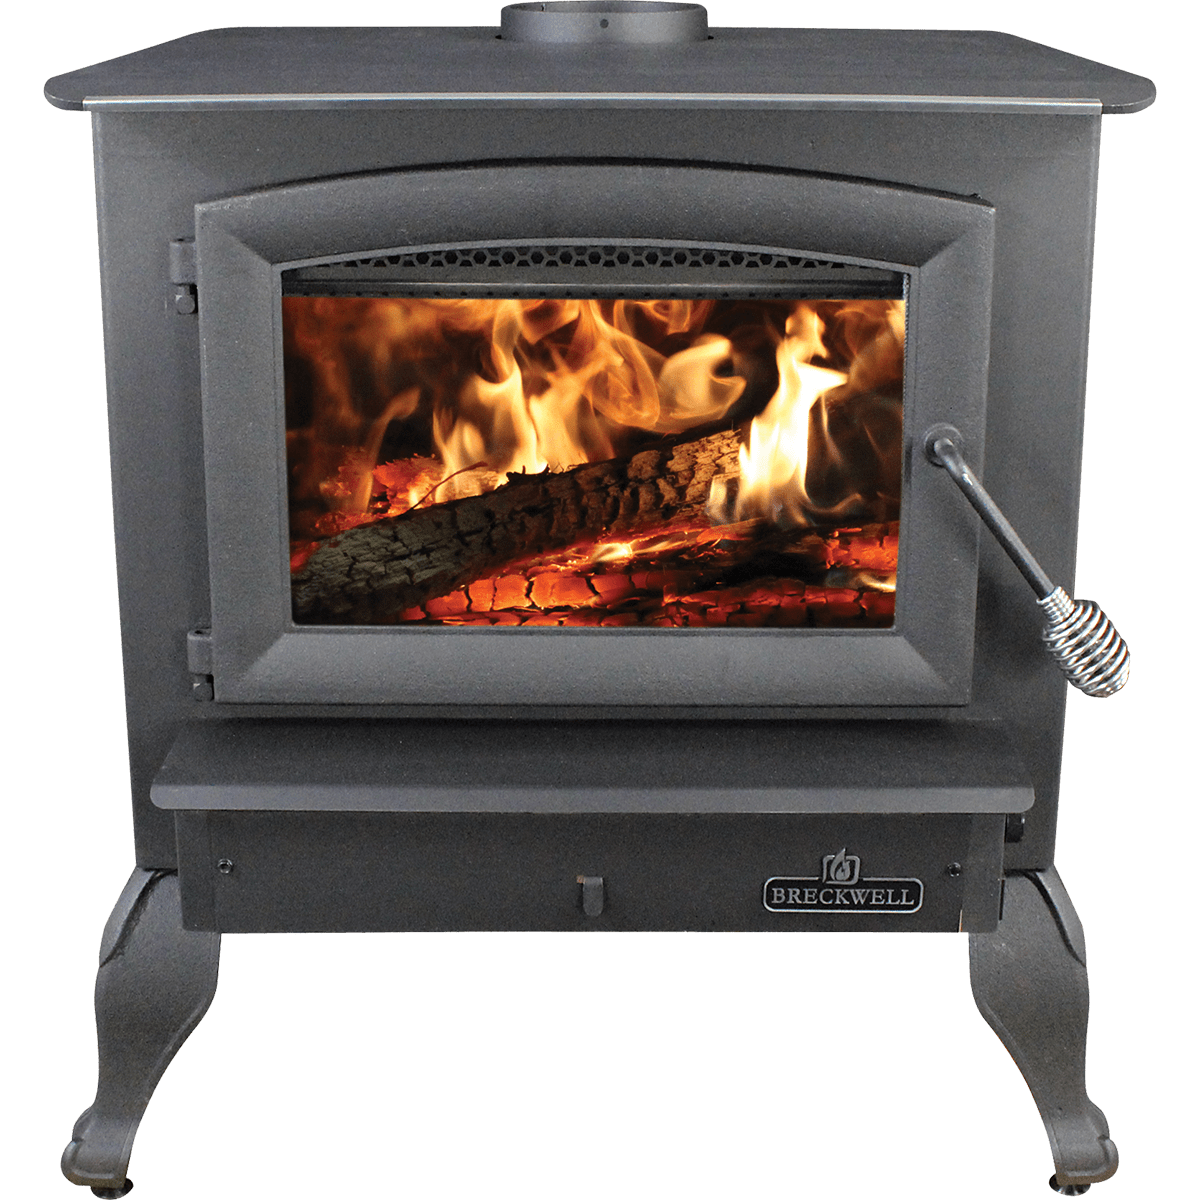 Breckwell Sw740 Wood Stove With Legs, Pedestal, Or Insert